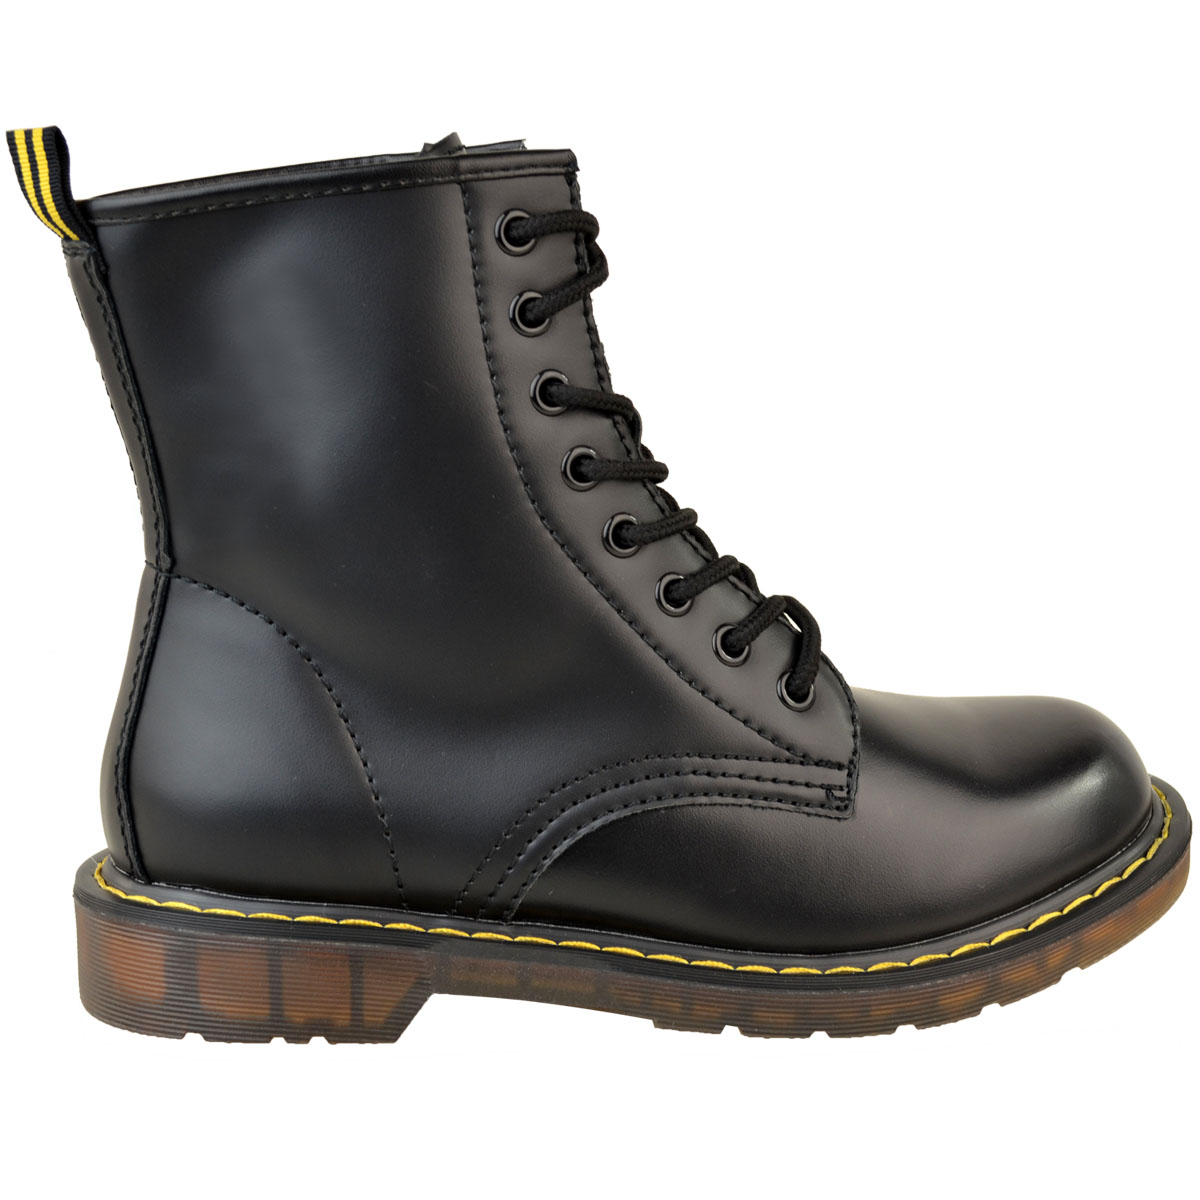 Womens-Ladies-Doc-Ankle-Boots-Low-Flat-Heel-Lace-Up-Worker-Army-Black-Goth-Size thumbnail 4